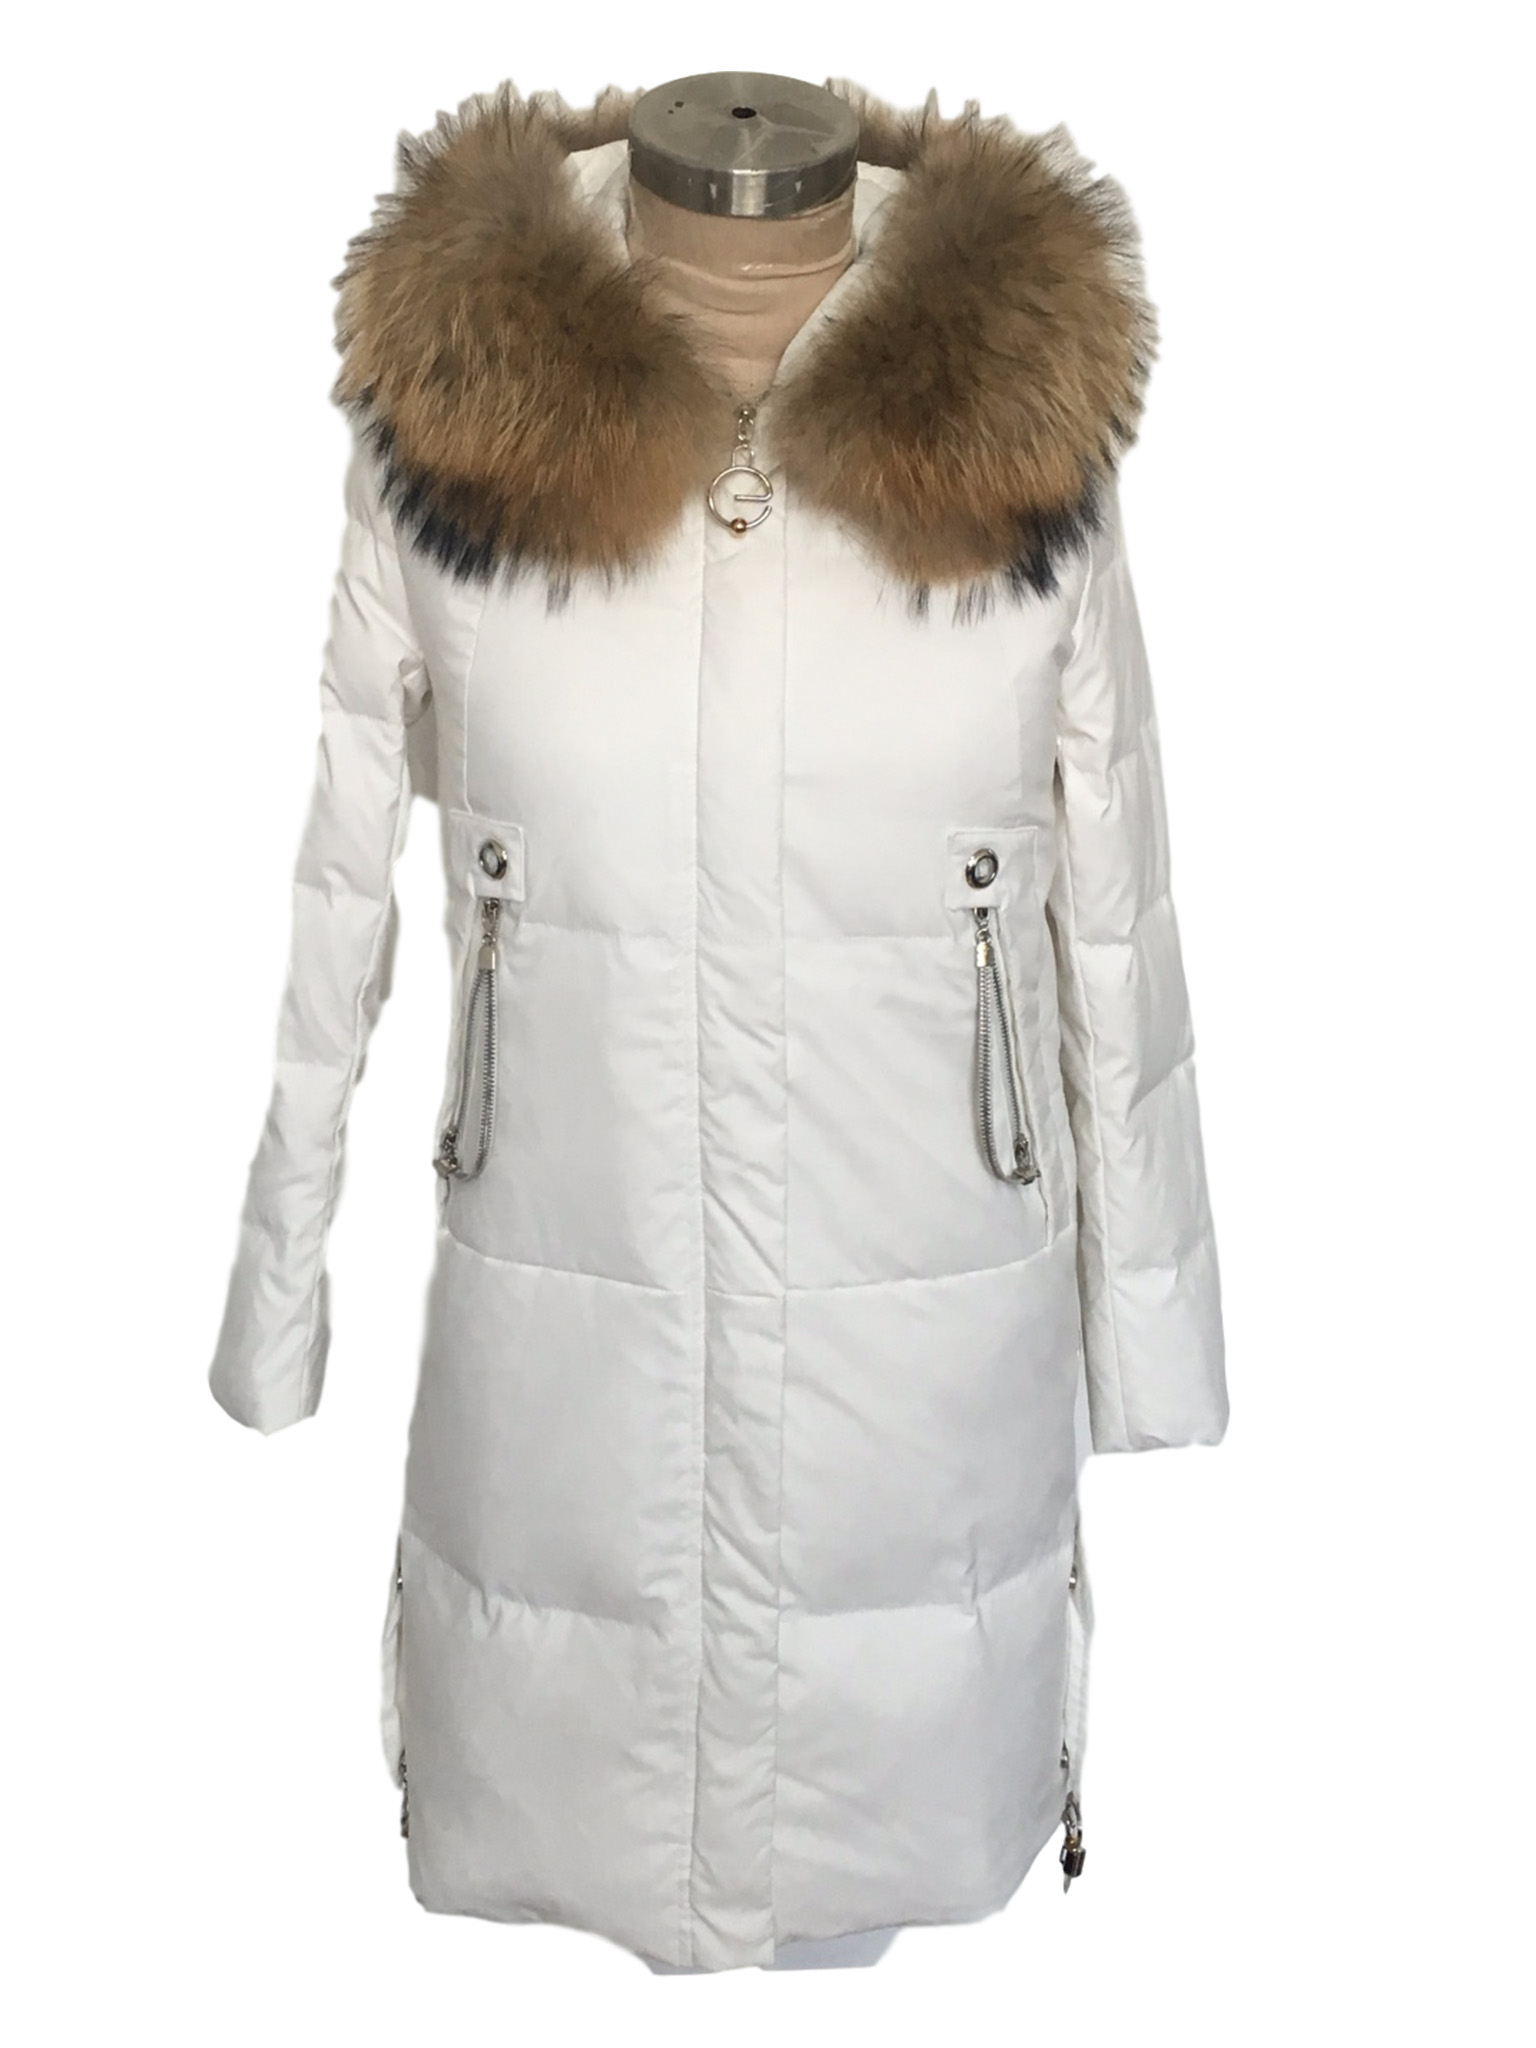 down jacket women sale,down jacket women,mens down jacket,down coat women,Huarui export